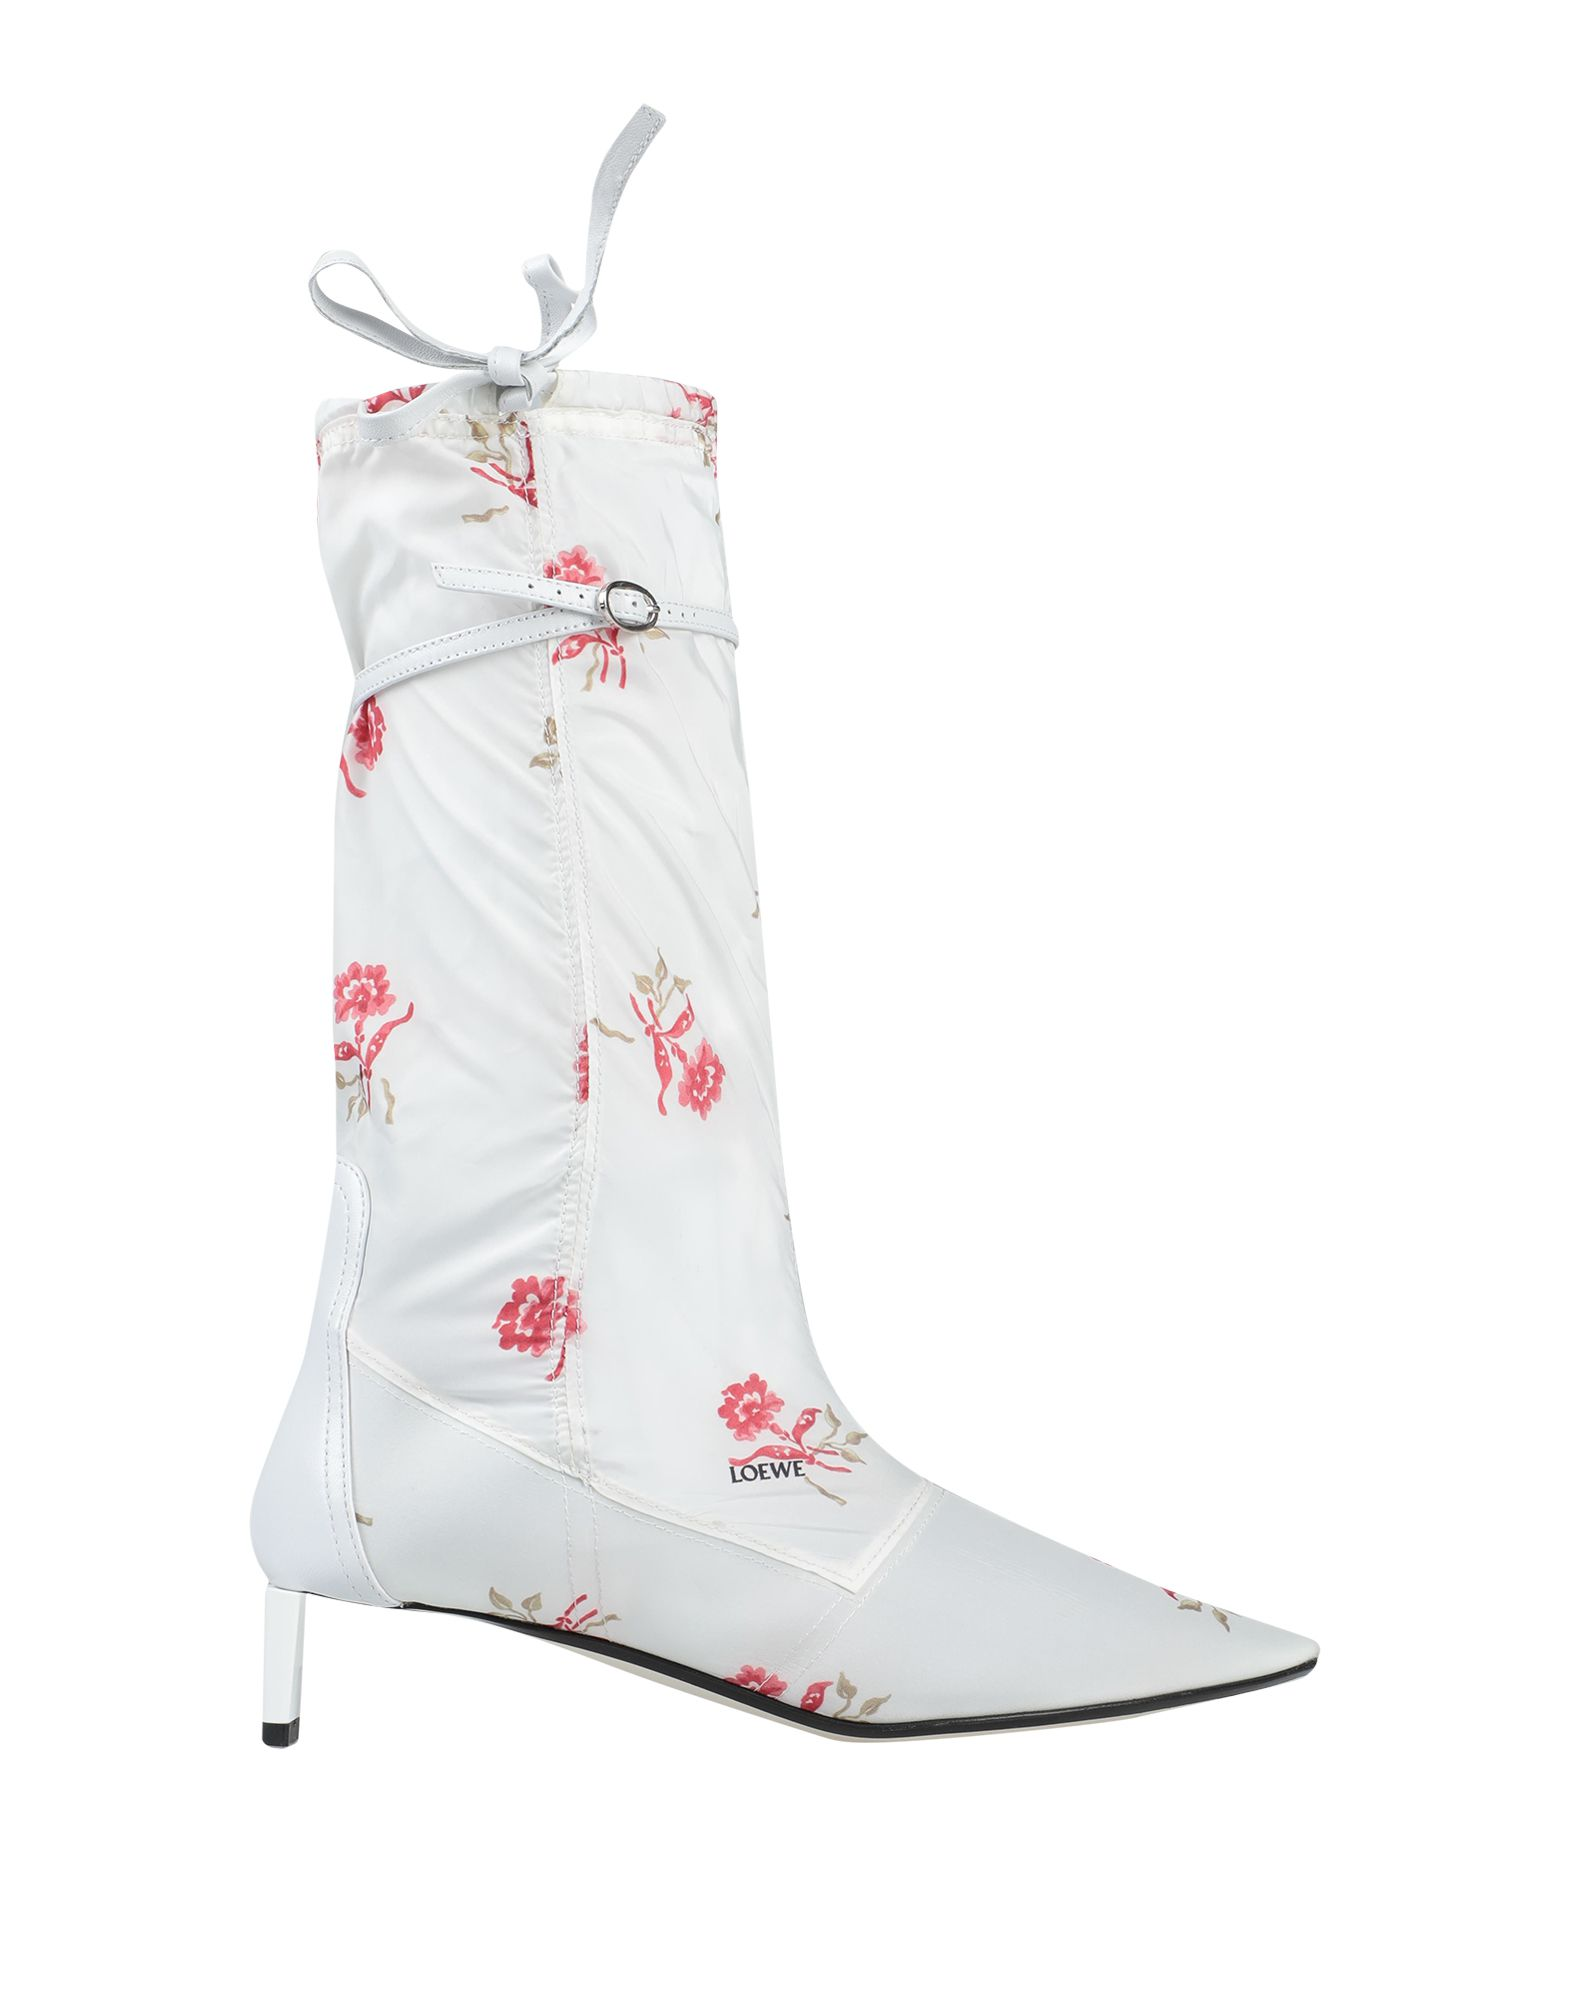 LOEWE Boots. techno fabric, laces, floral design, narrow toeline, sculpted heel, leather lining, leather/rubber sole, contains non-textile parts of animal origin. Soft Leather, Textile fibers